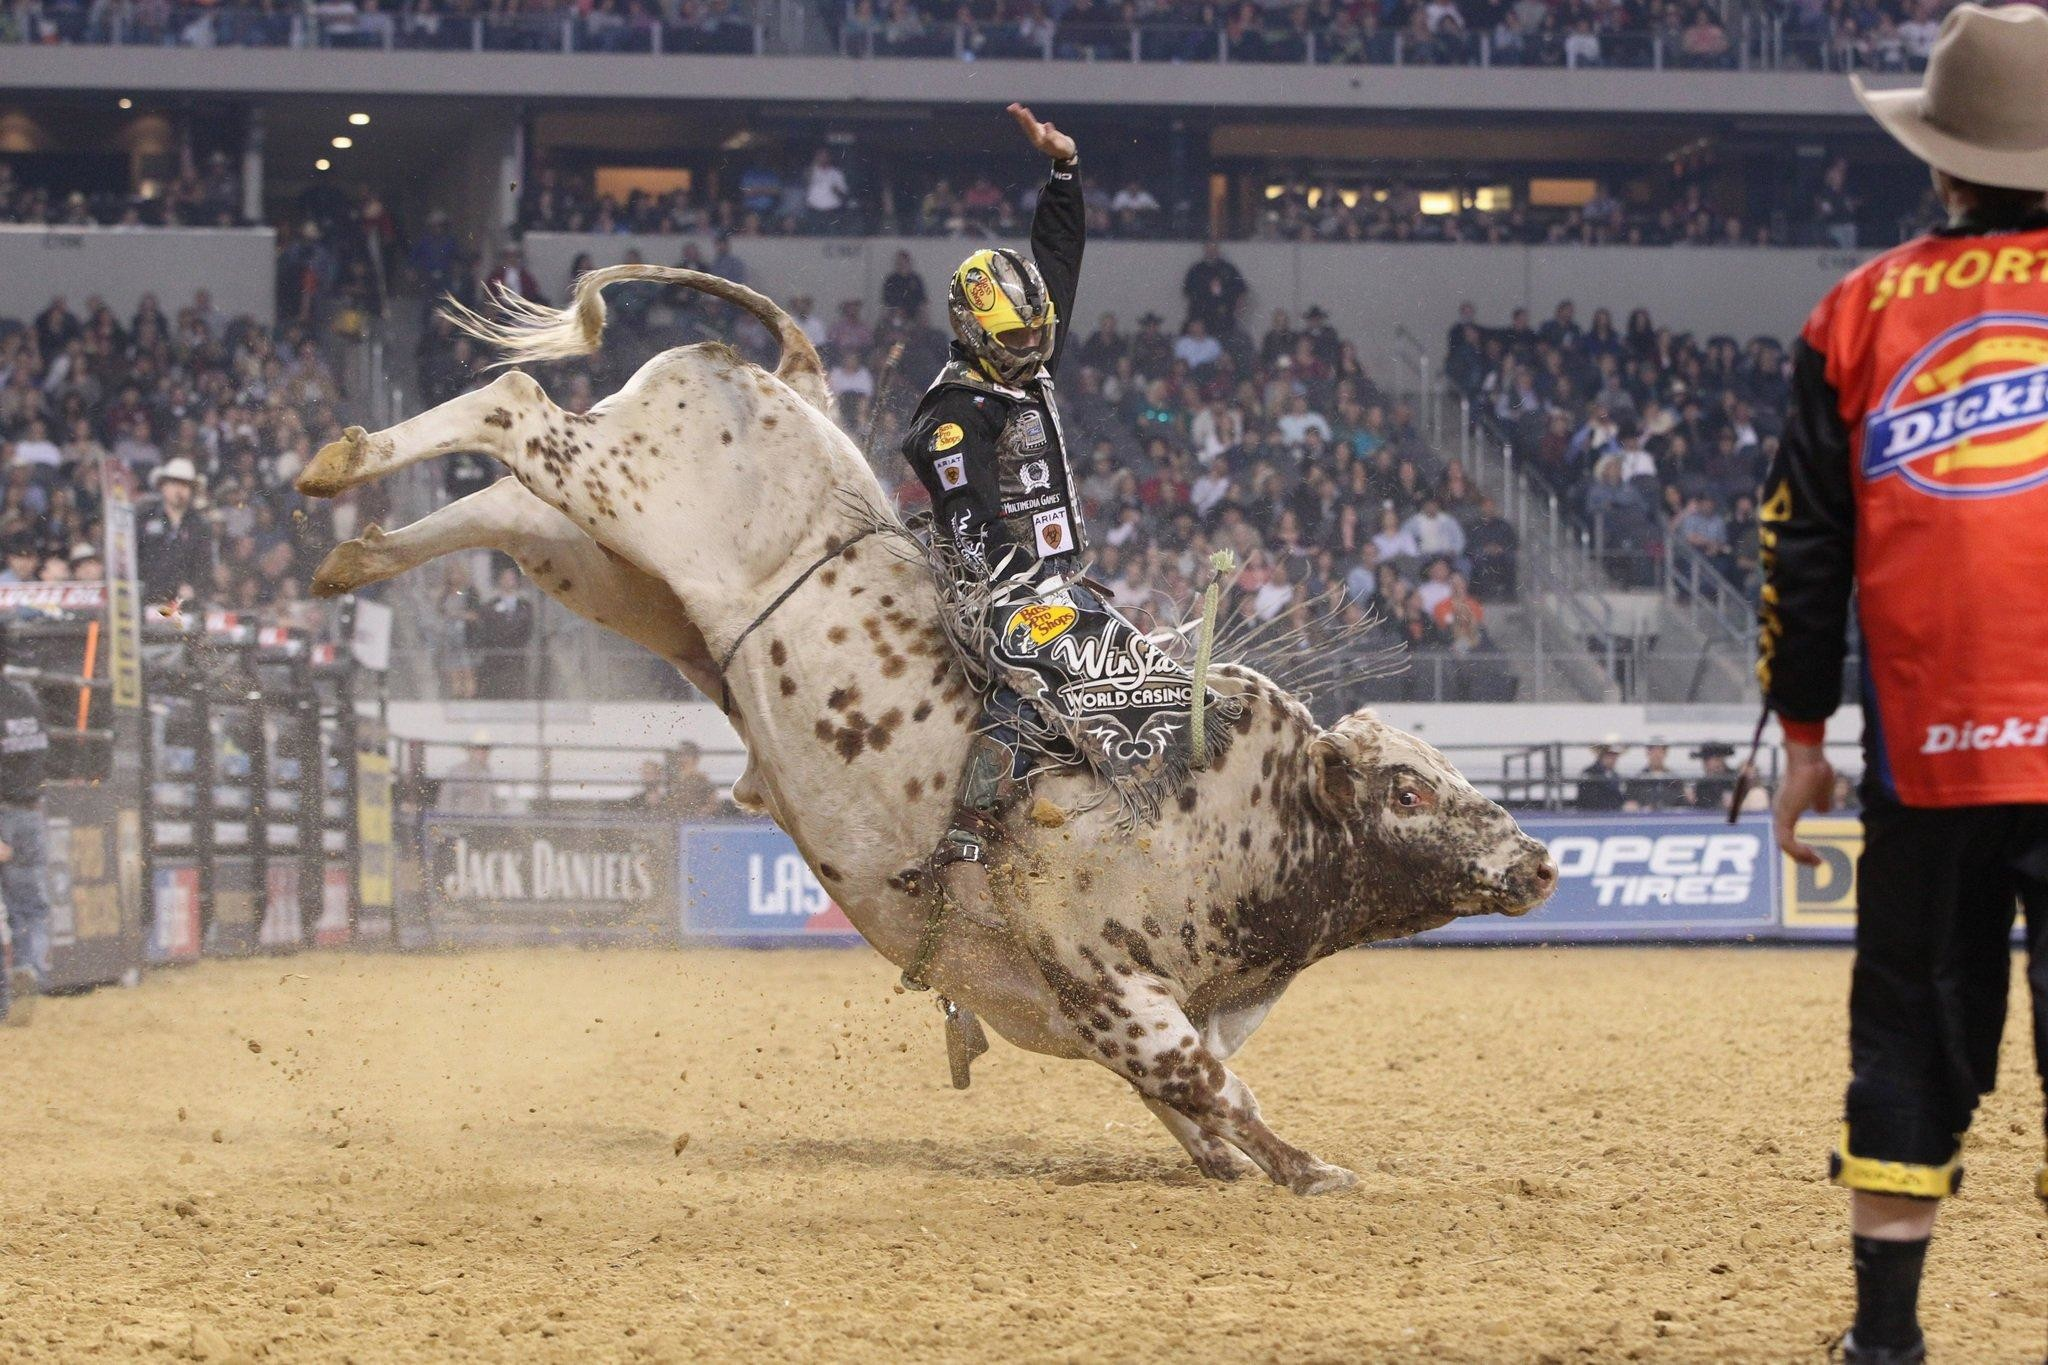 2048x1365 wallpaper.wiki-Images-bull-riding-bullrider-rodeo-westernz-